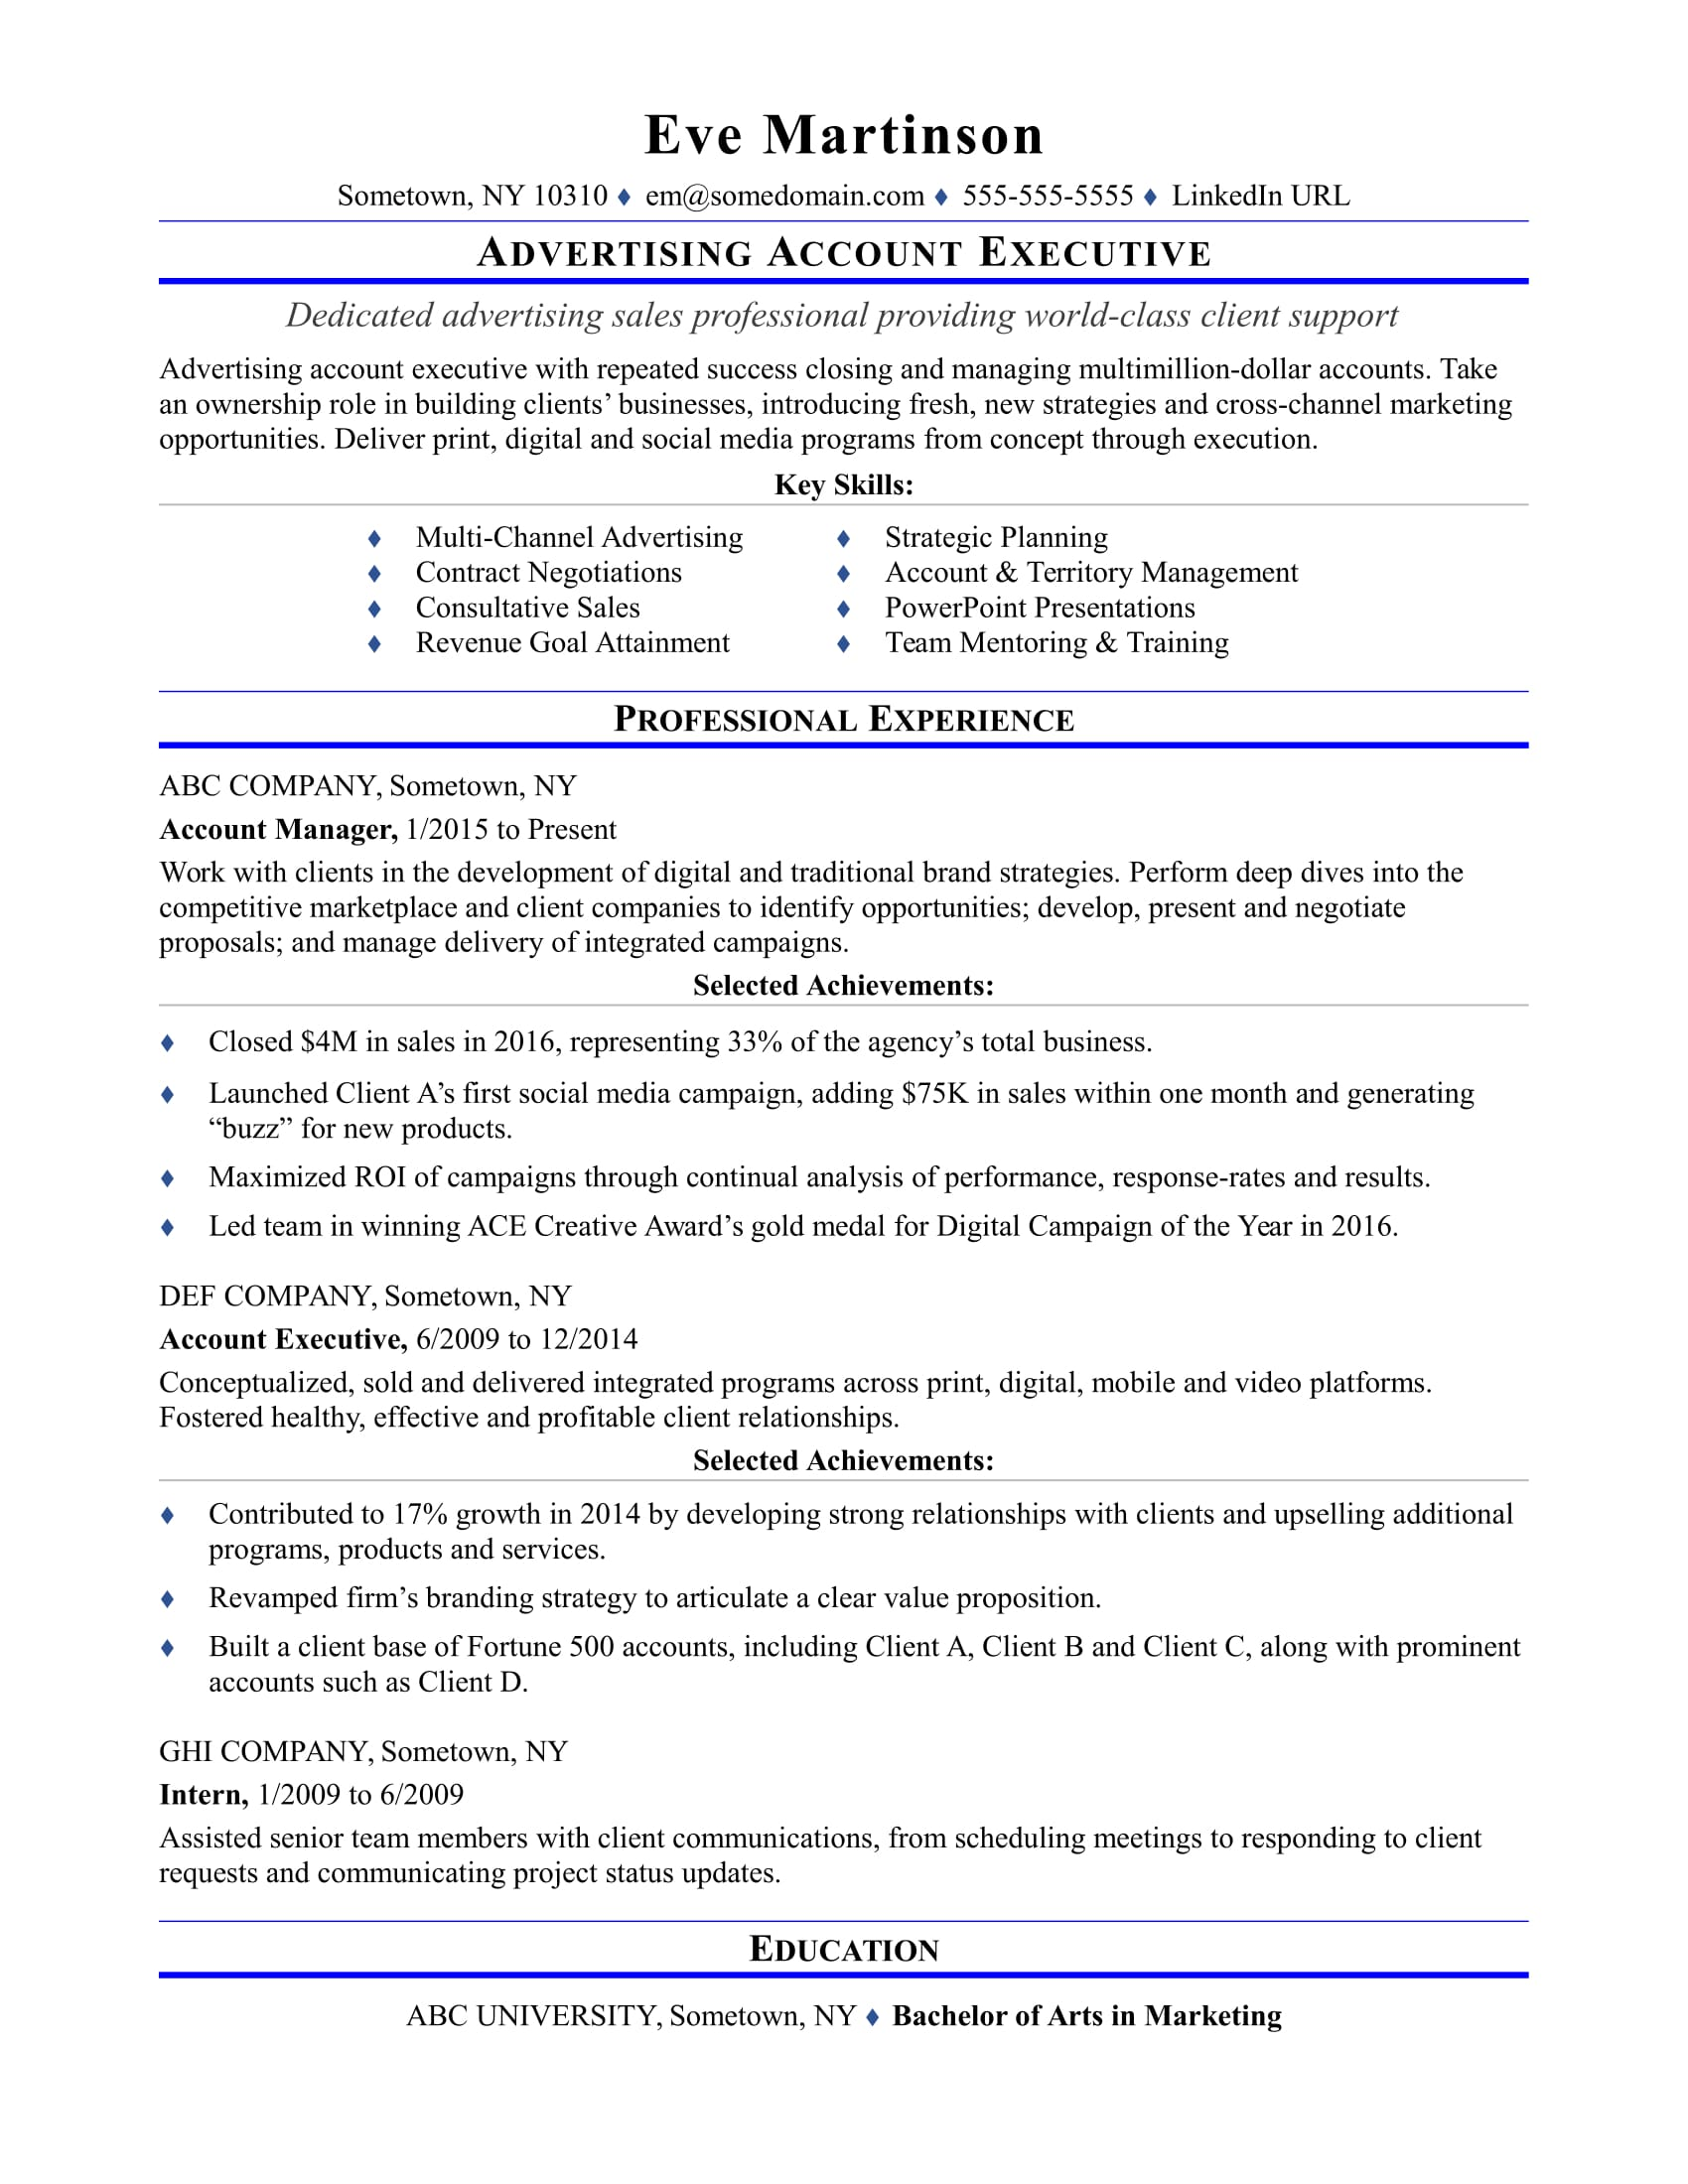 sample resume for an advertising account executive - Account Executive Resume Sample